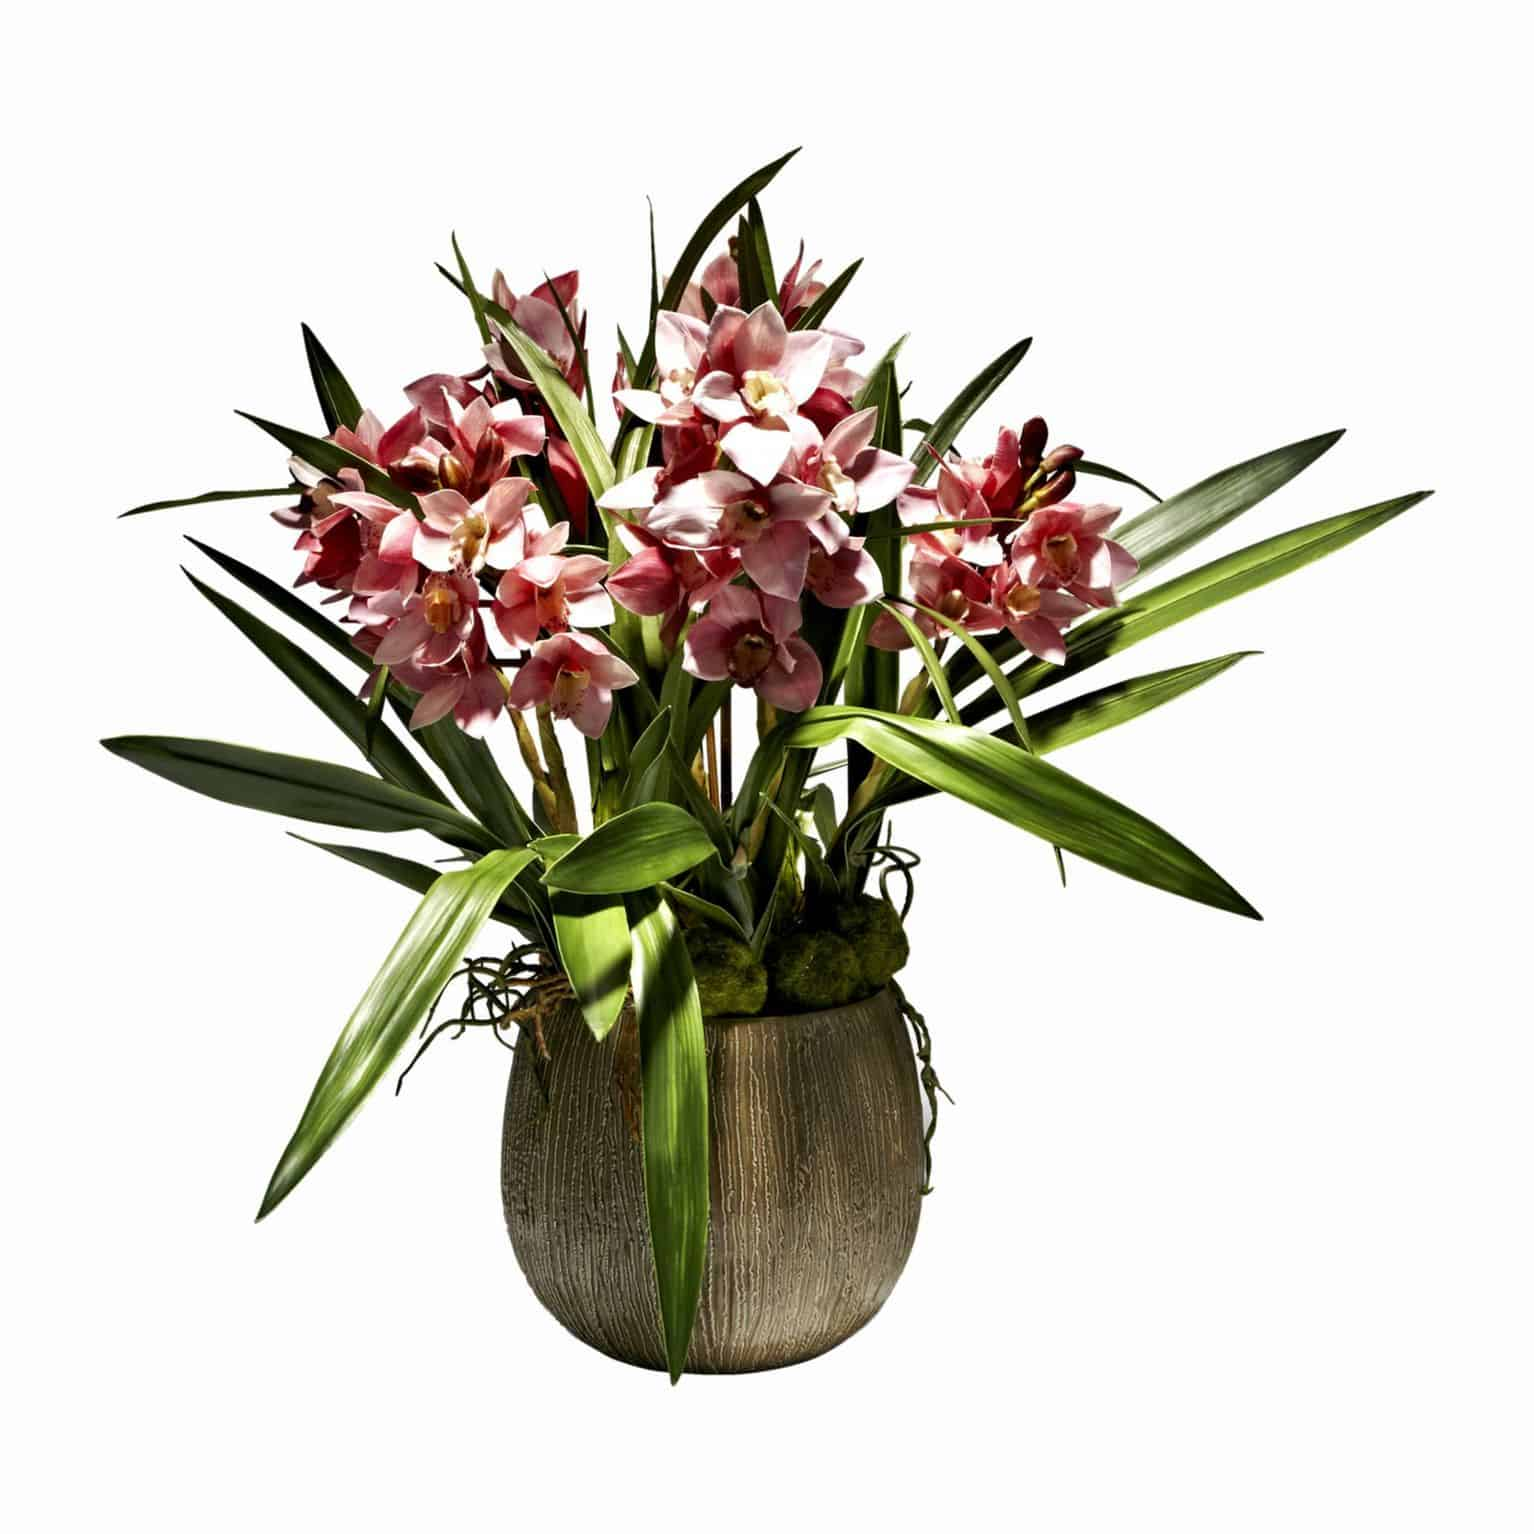 Buy our popular orchid plant with large lifelike silk flowering heads in soft rich pink tones. Includes artificial leaves and moss stone for natural detail.